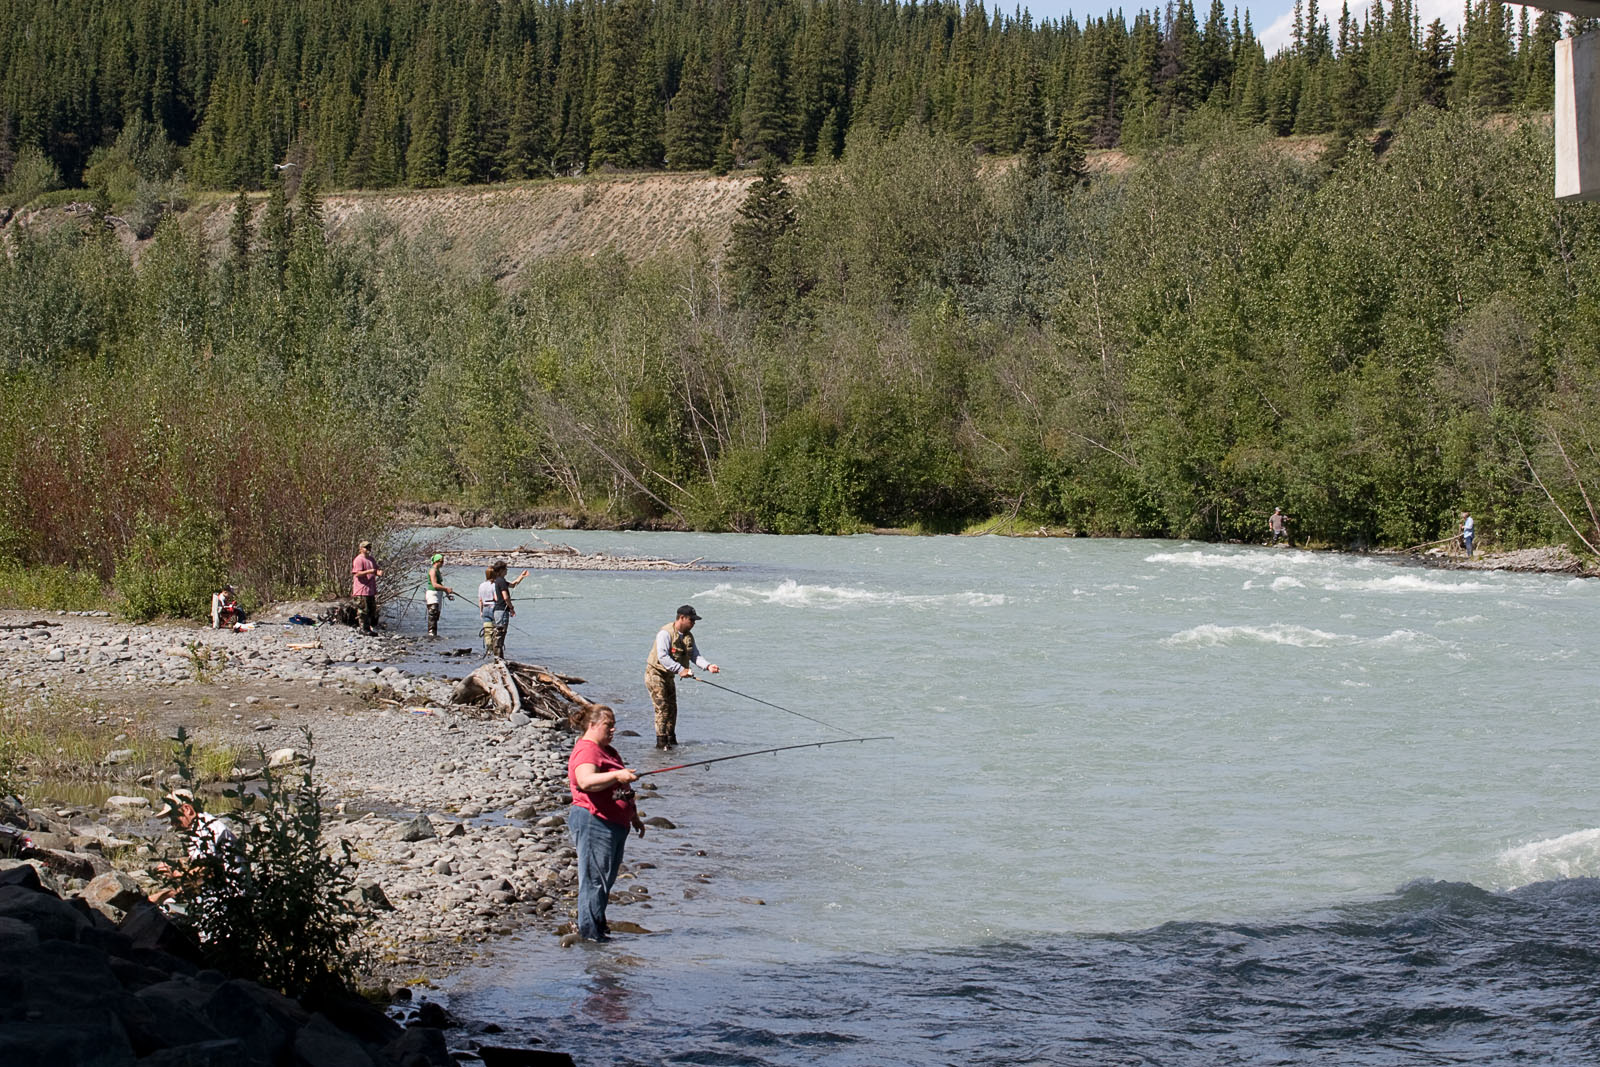 The lack of access on this large river makes combat fishing the norm for anyone who hasn't planned ahead and got a permit from the native tribe controlling the land above the river.  It's a choice between this and trespassing.  I fished for about 20 minutes before I got tired of it and headed to a different stream. From the Klutina River in Alaska.